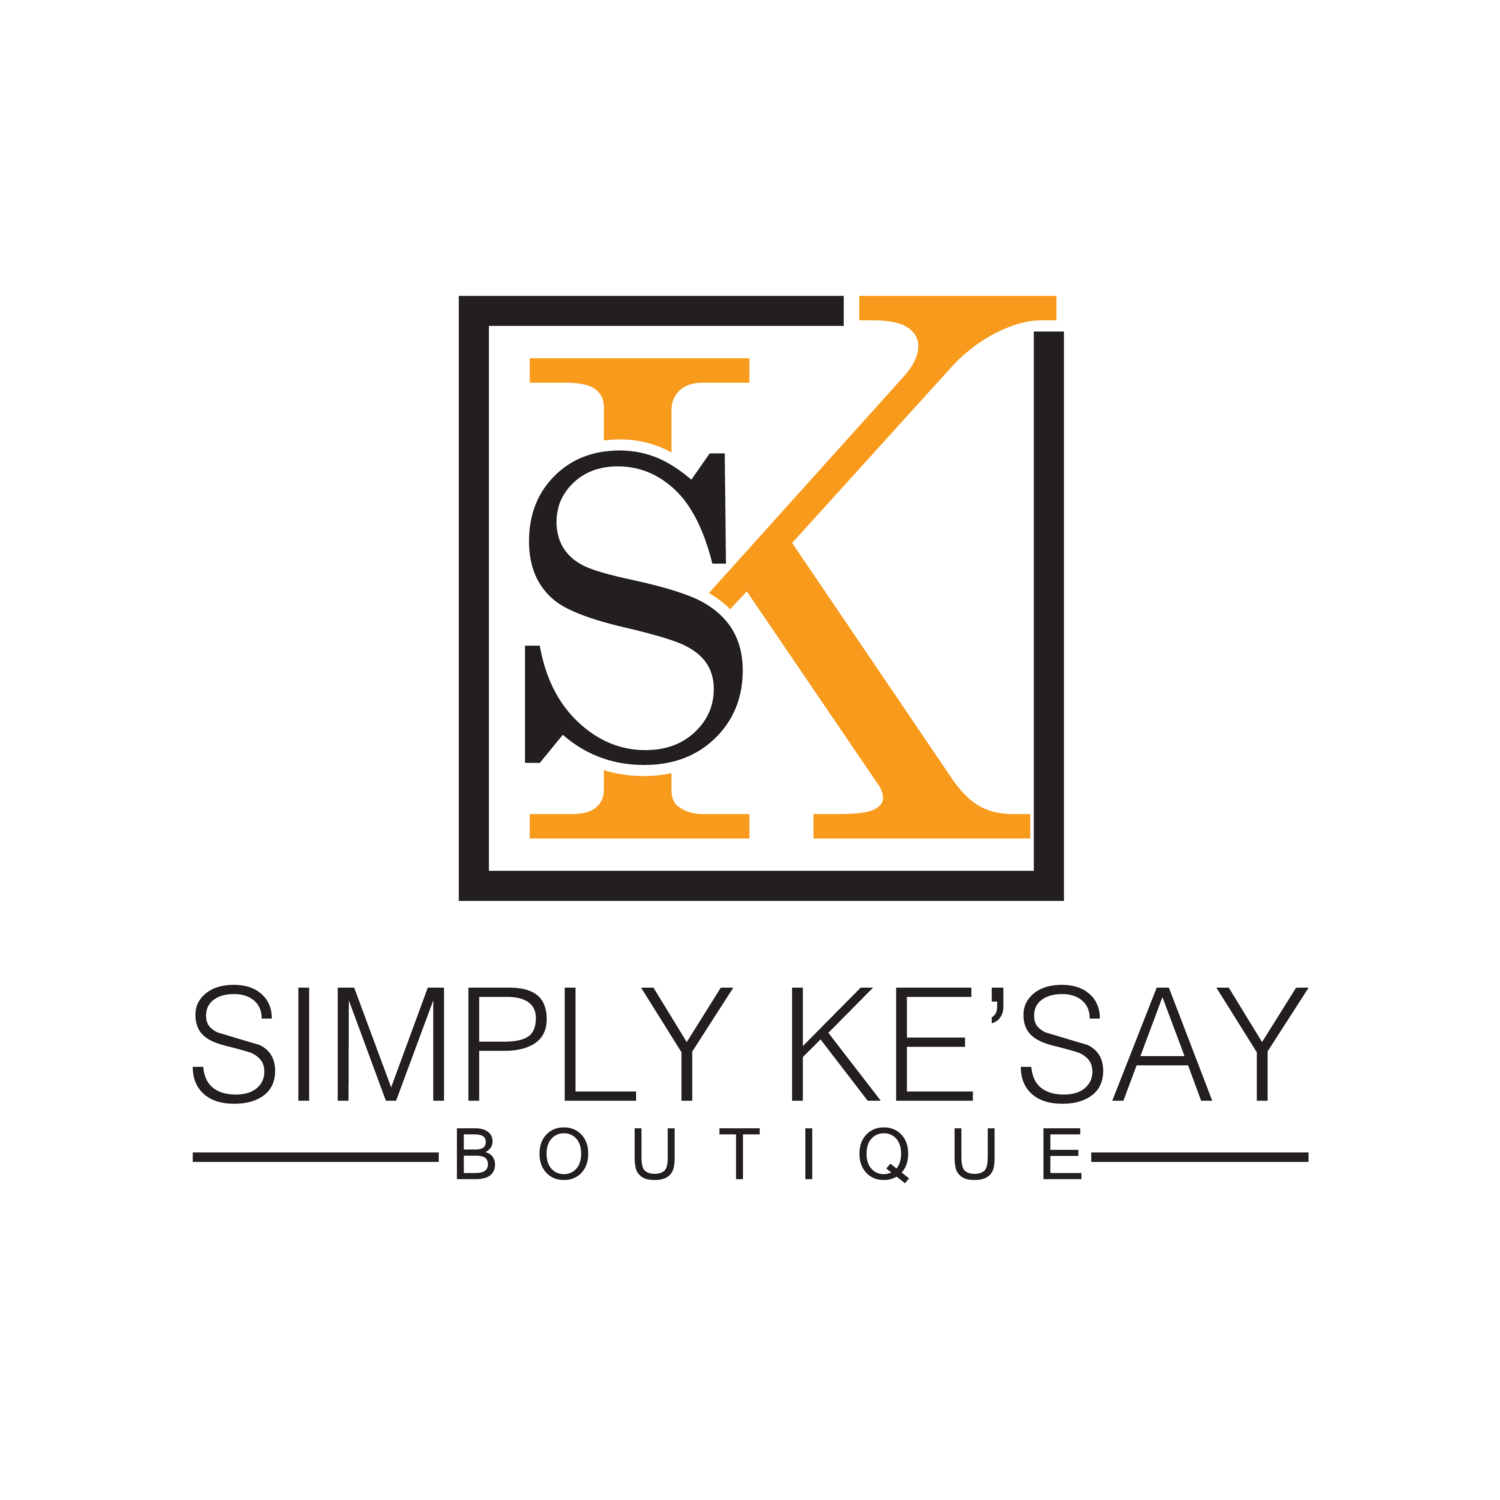 Simply Ke'say Boutique